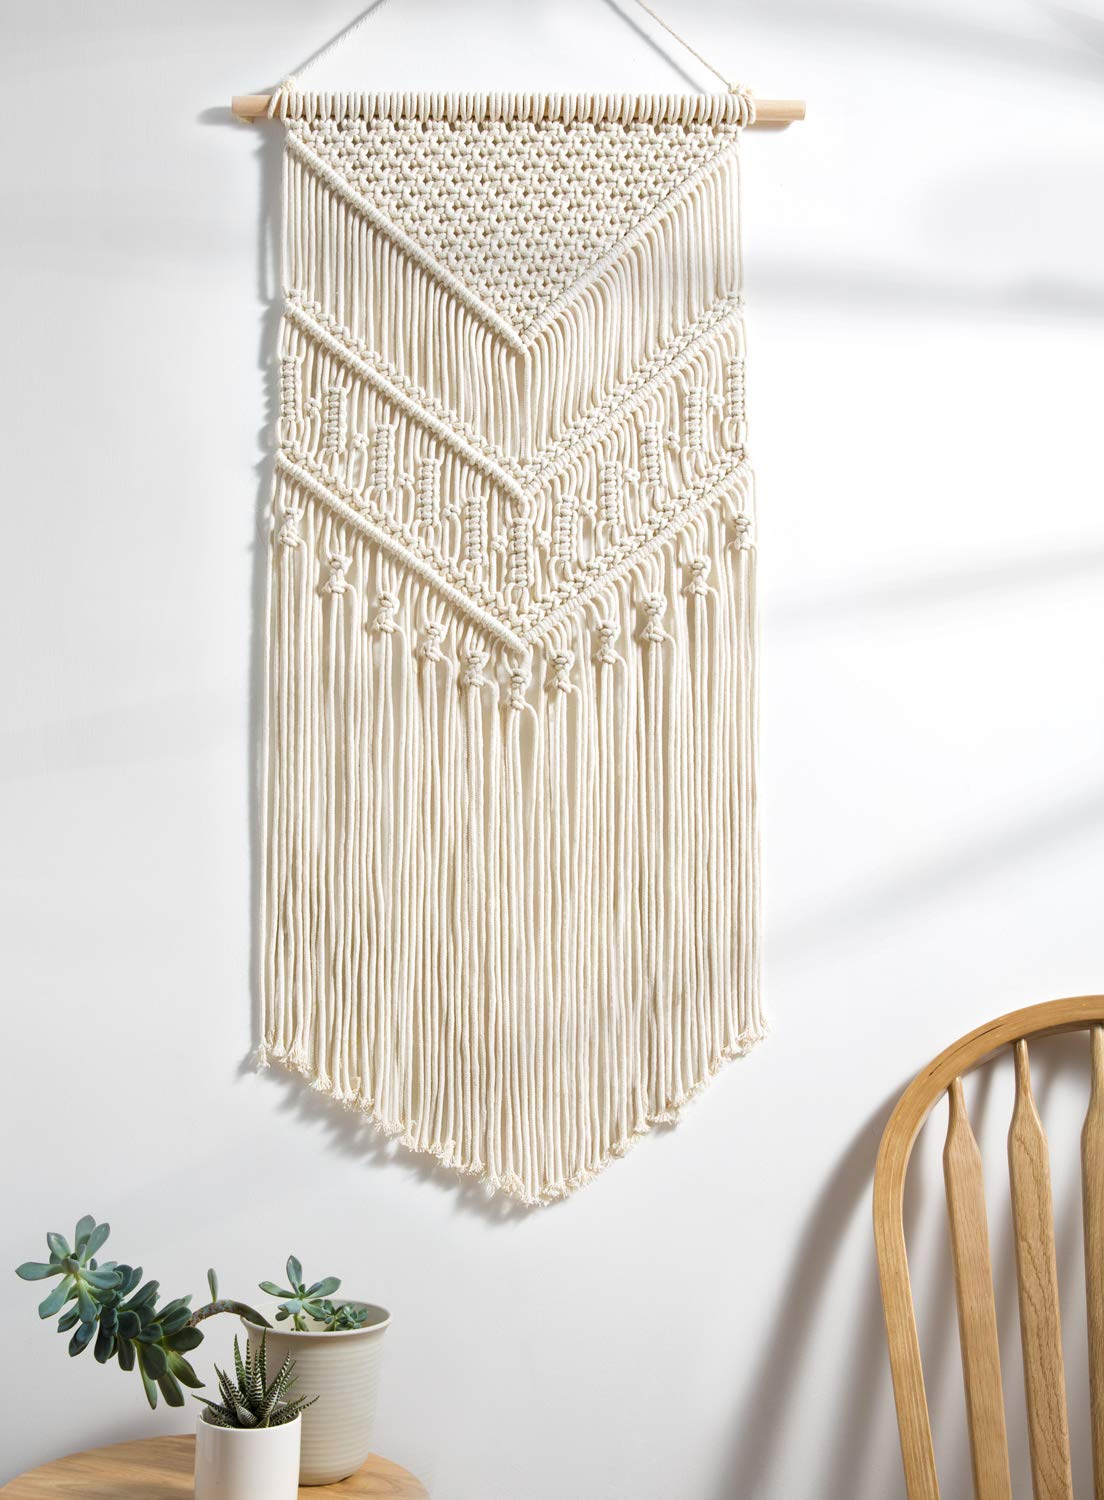 Macramé Décor - This 60s & 70s inspired trend is making a comeback and taking this season by storm. The bohemian inspired textile art form of knotting and hitching is the perfect décor for any room and comes in many shapes and forms!